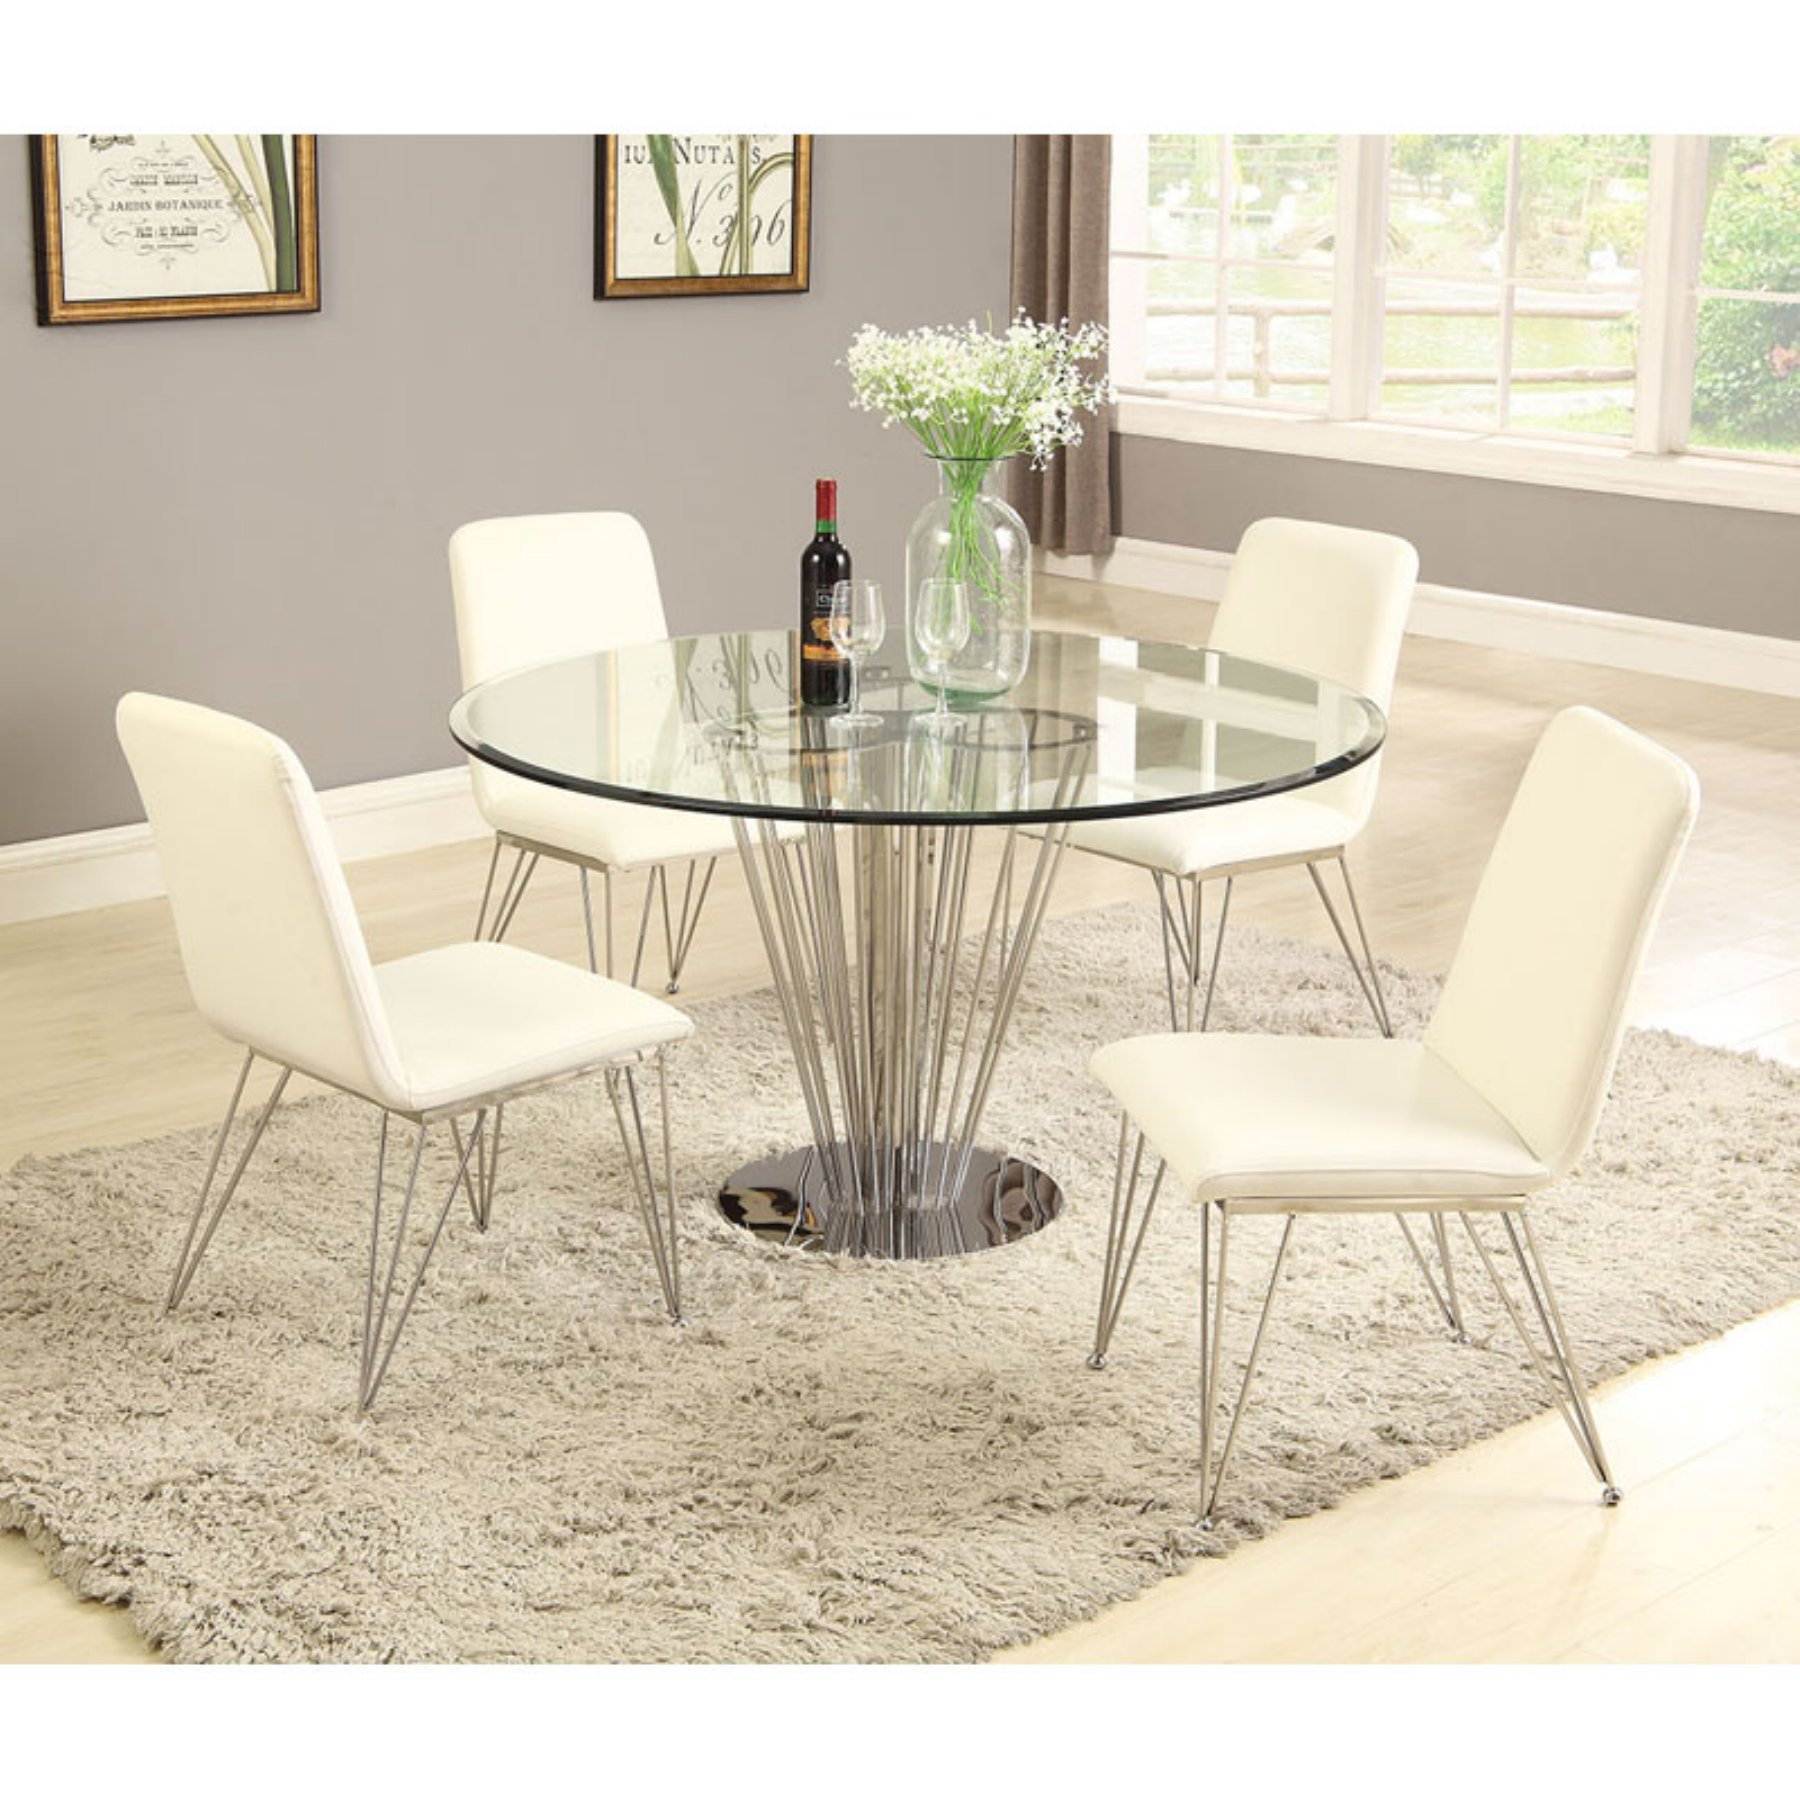 Chintaly Fernanda 5 Piece Dining Table Set In 2019 | Dining Throughout Latest Cleary Oval Dining Pedestal Tables (View 10 of 25)